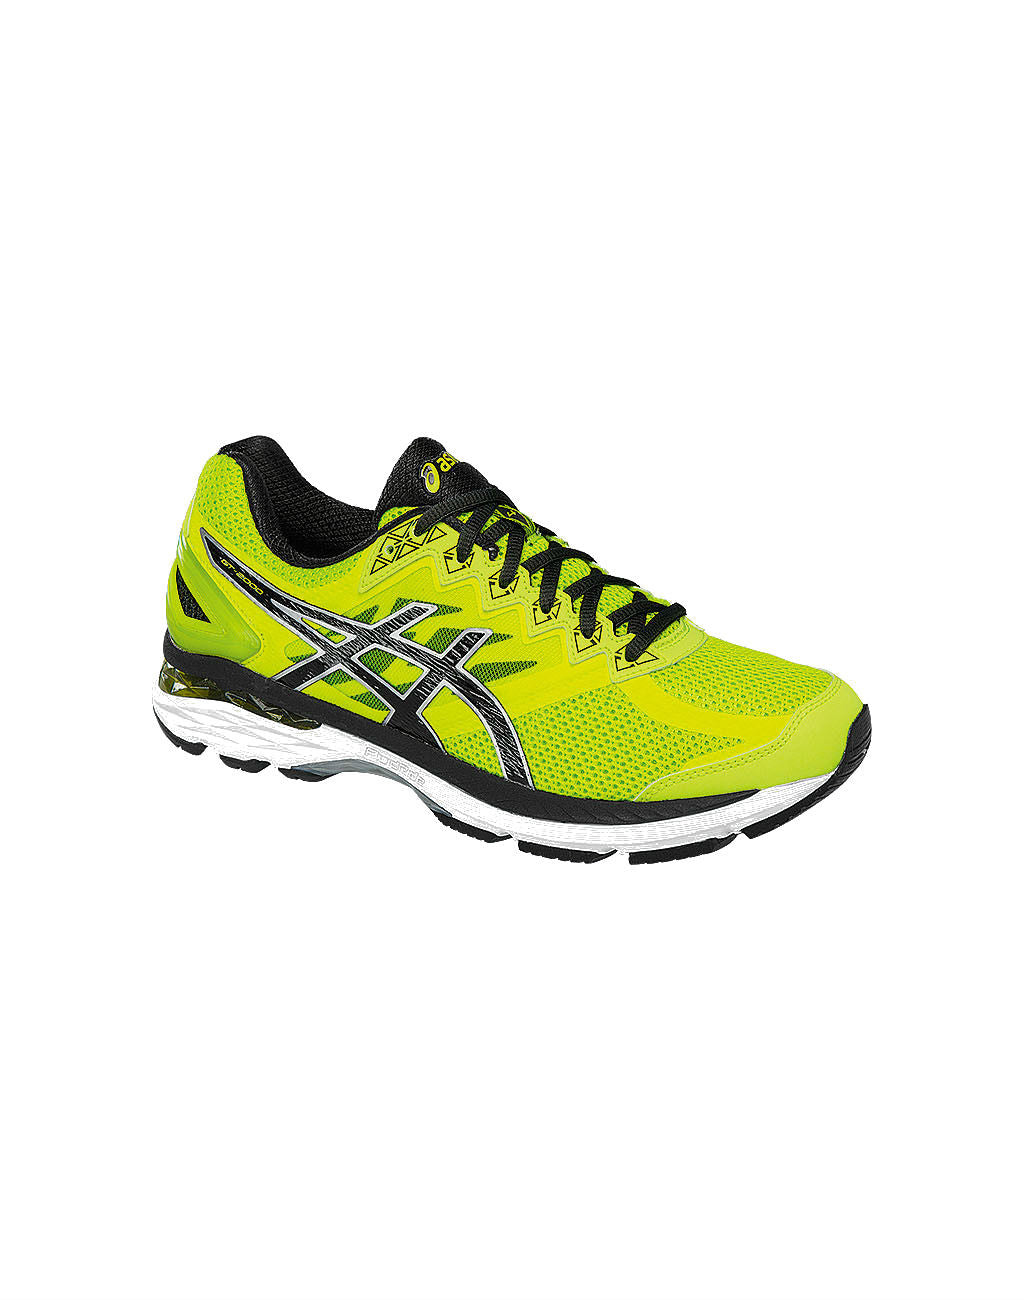 ASICS GT-2000 4 (Men's)Safety Yellow/Onyx/Carbon_master_image